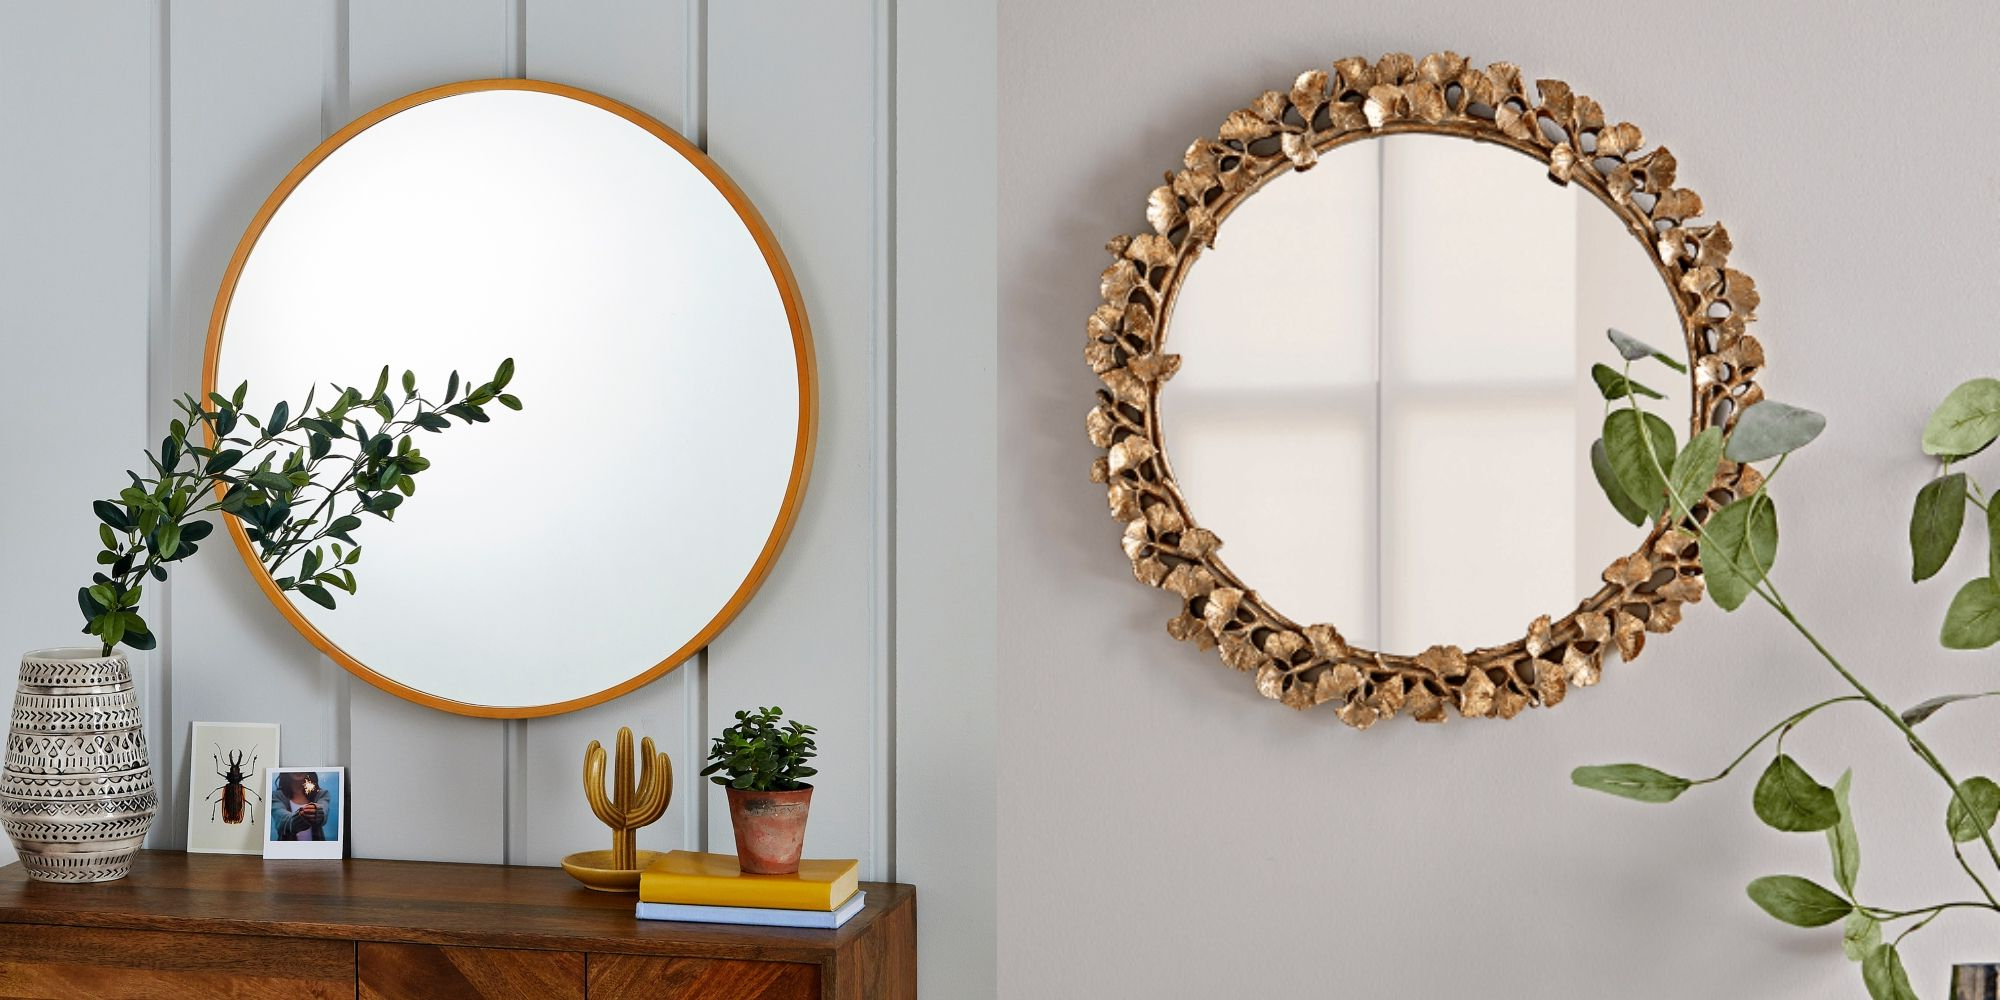 Favorite 7 Statement Round Wall Mirrors To Buy For Your Home Intended For Home Wall Mirrors (View 8 of 20)